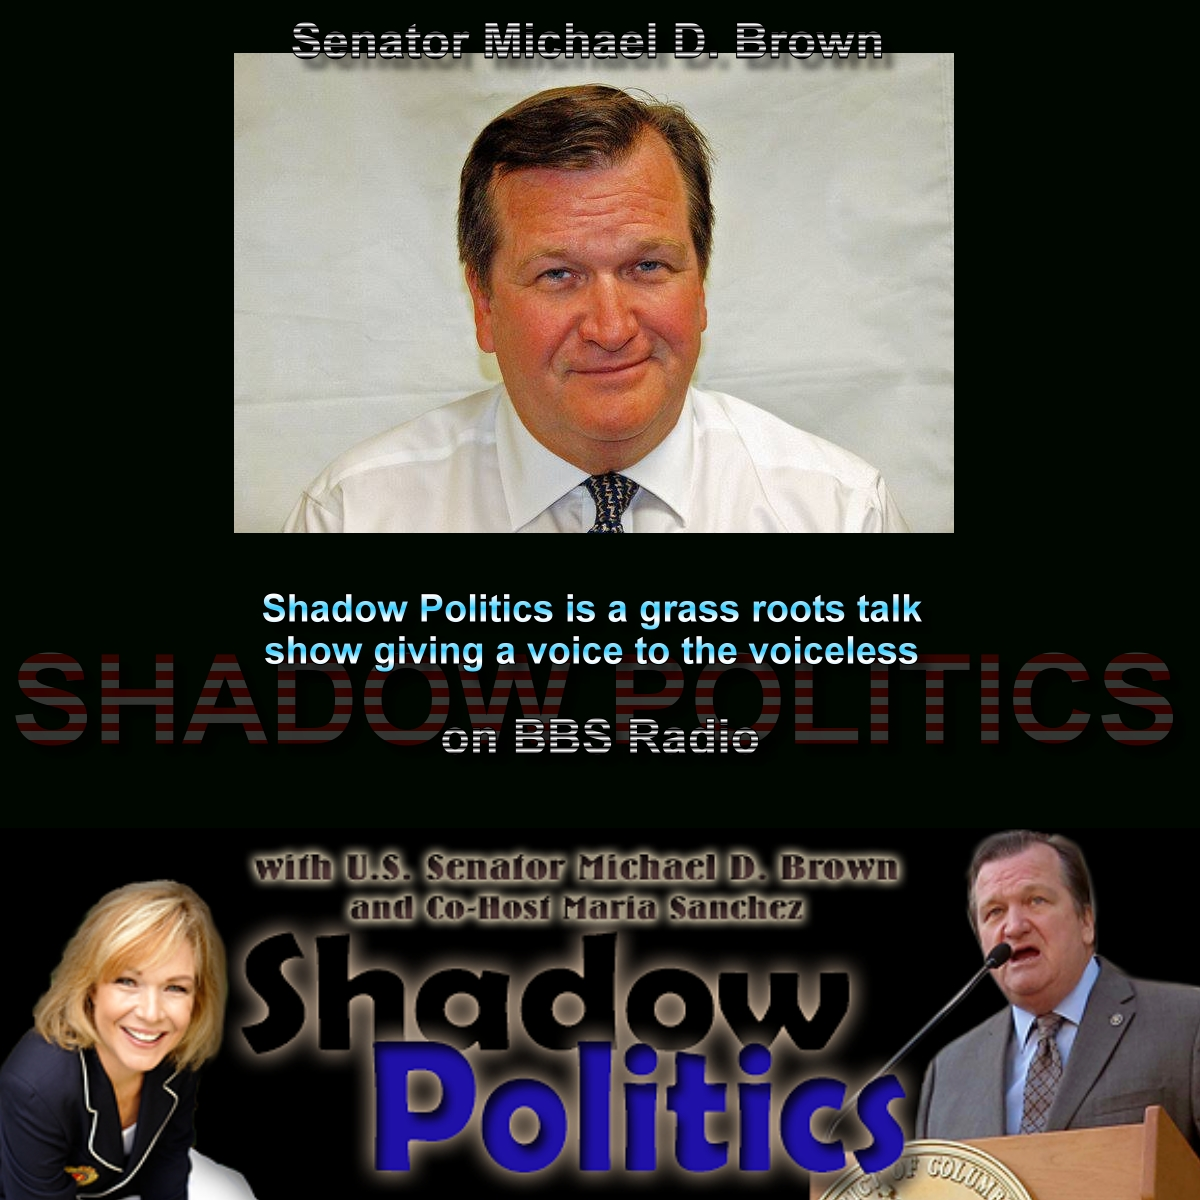 Shadow Politics with Michael D. Brown and Maria Sanchez